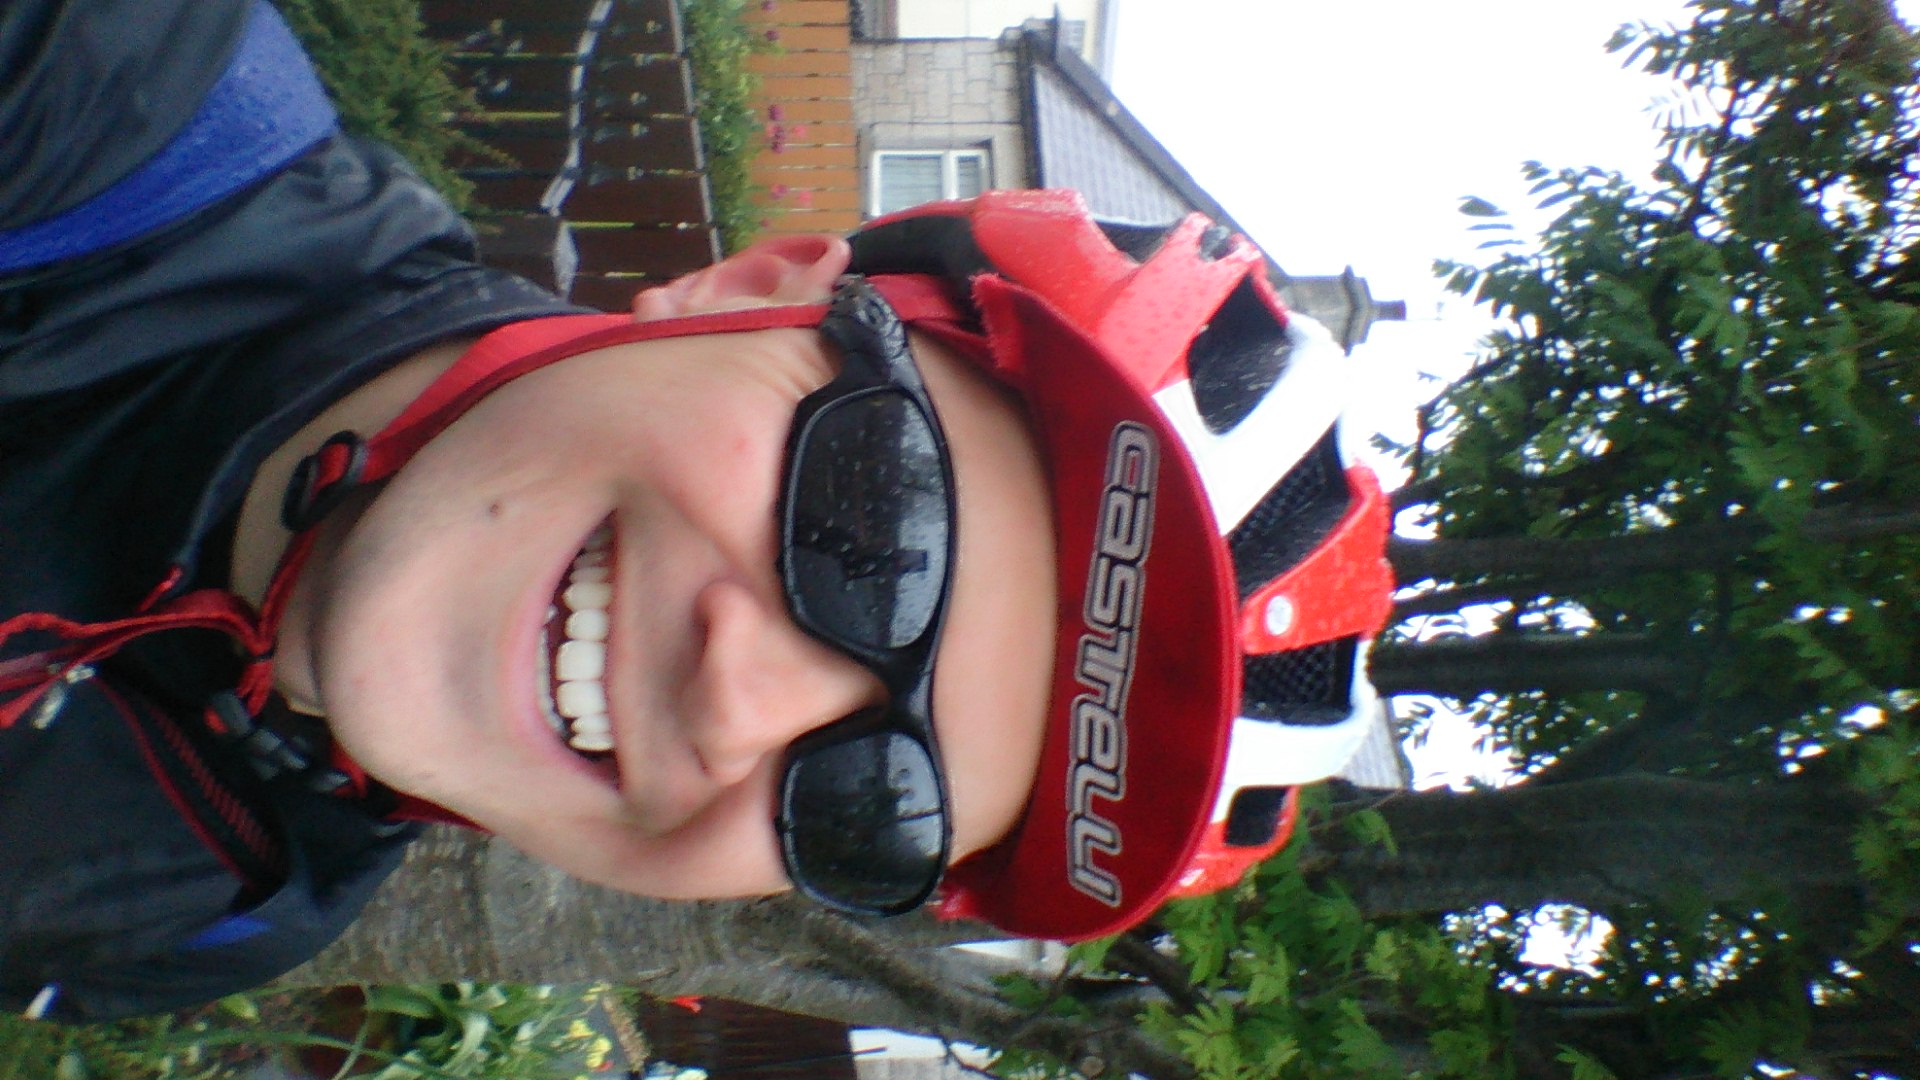 Brilliant ride...but SOAKED! Happy to stop in Armagh for Guinness, Pizza and a warm room!